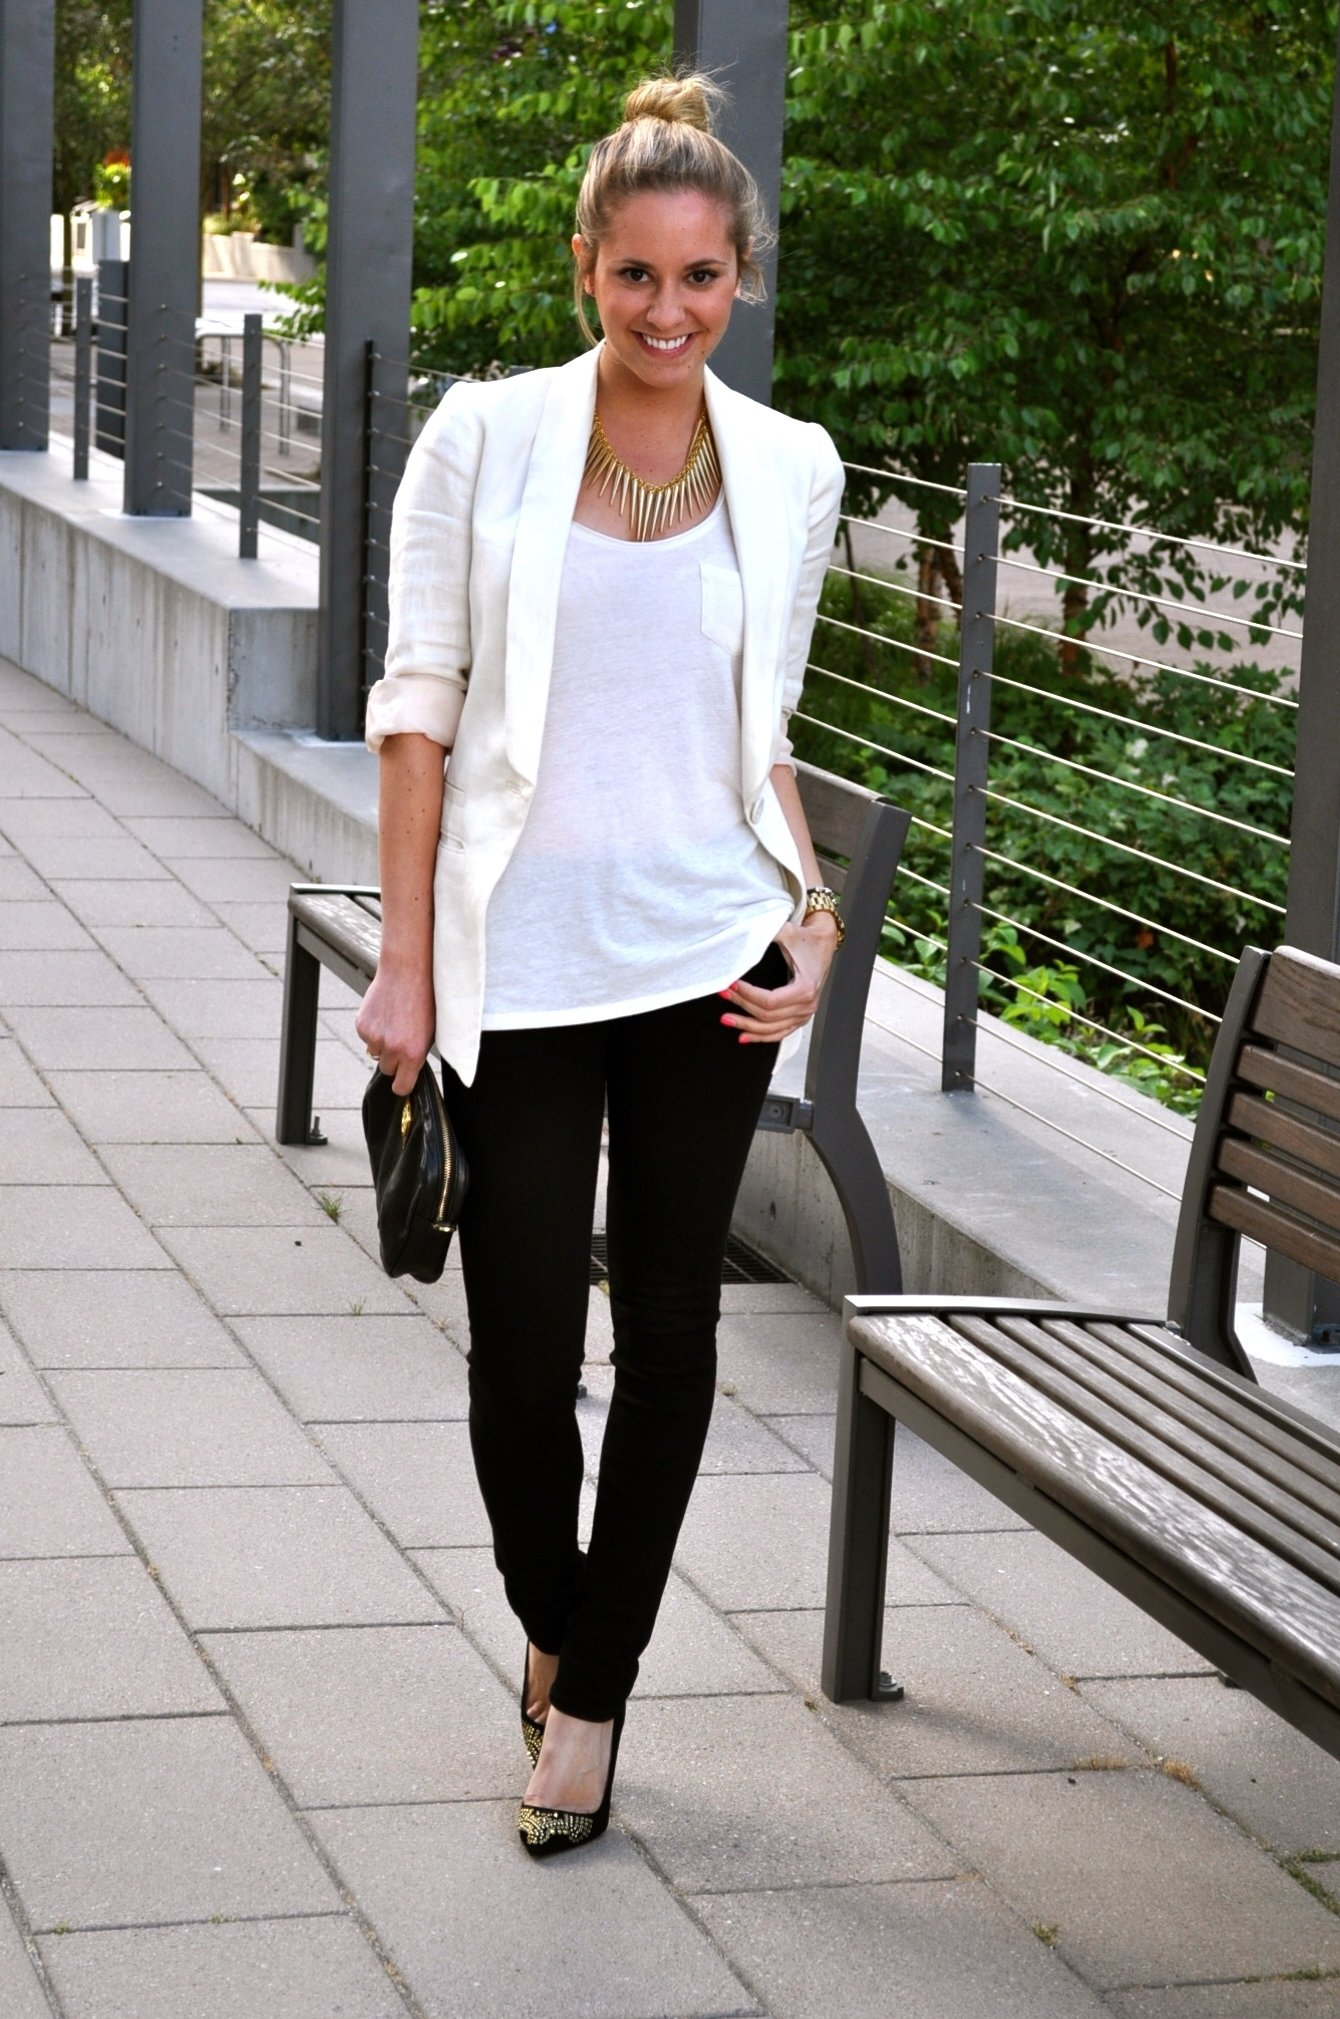 10 Unique Black And White Outfit Ideas black jeans outfits confessions of a product junkie 2021